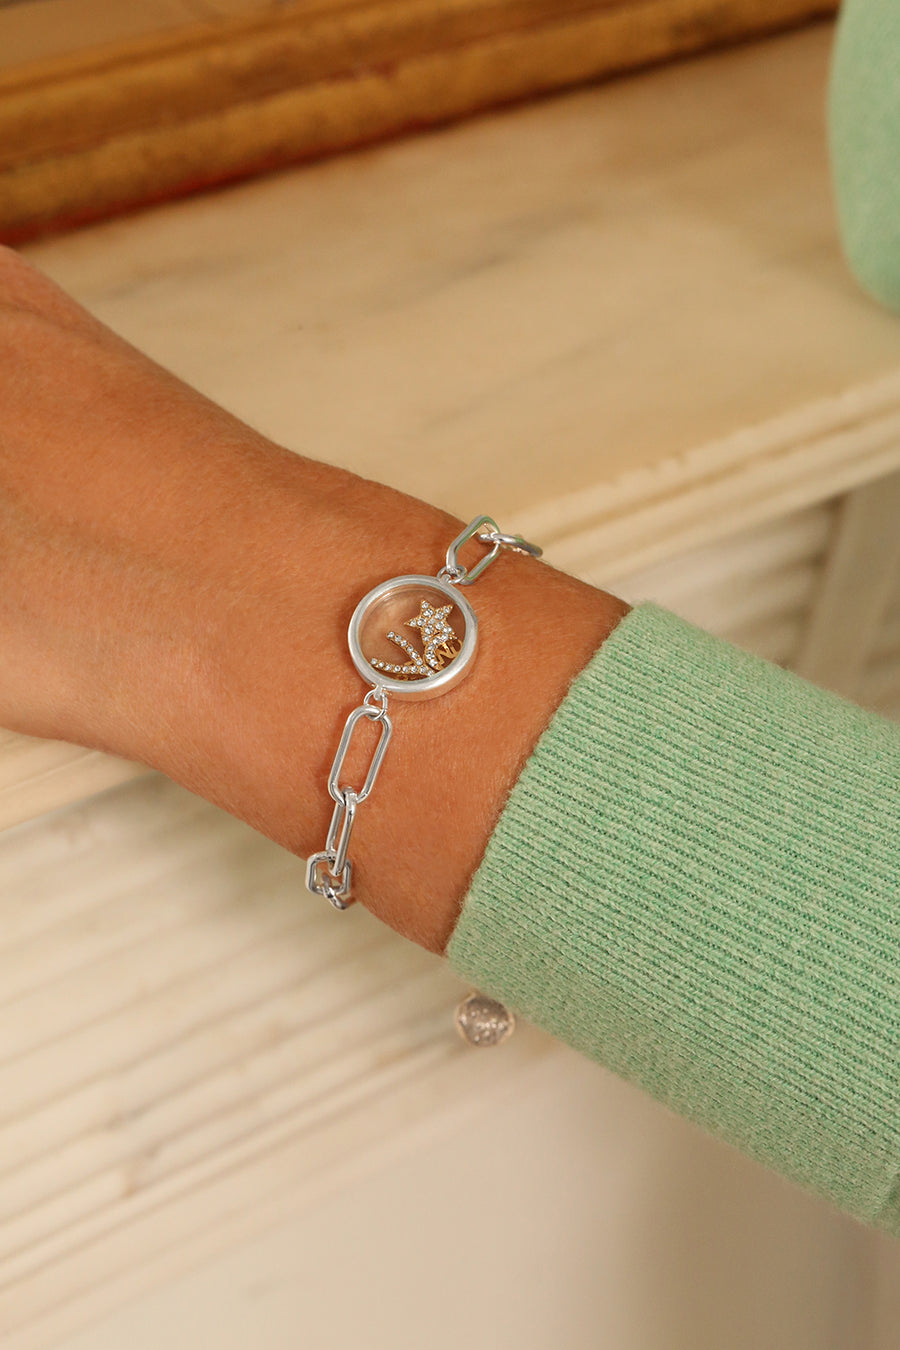 Kate Thornton Silver Floating Locket 'Be Kind' Bracelet